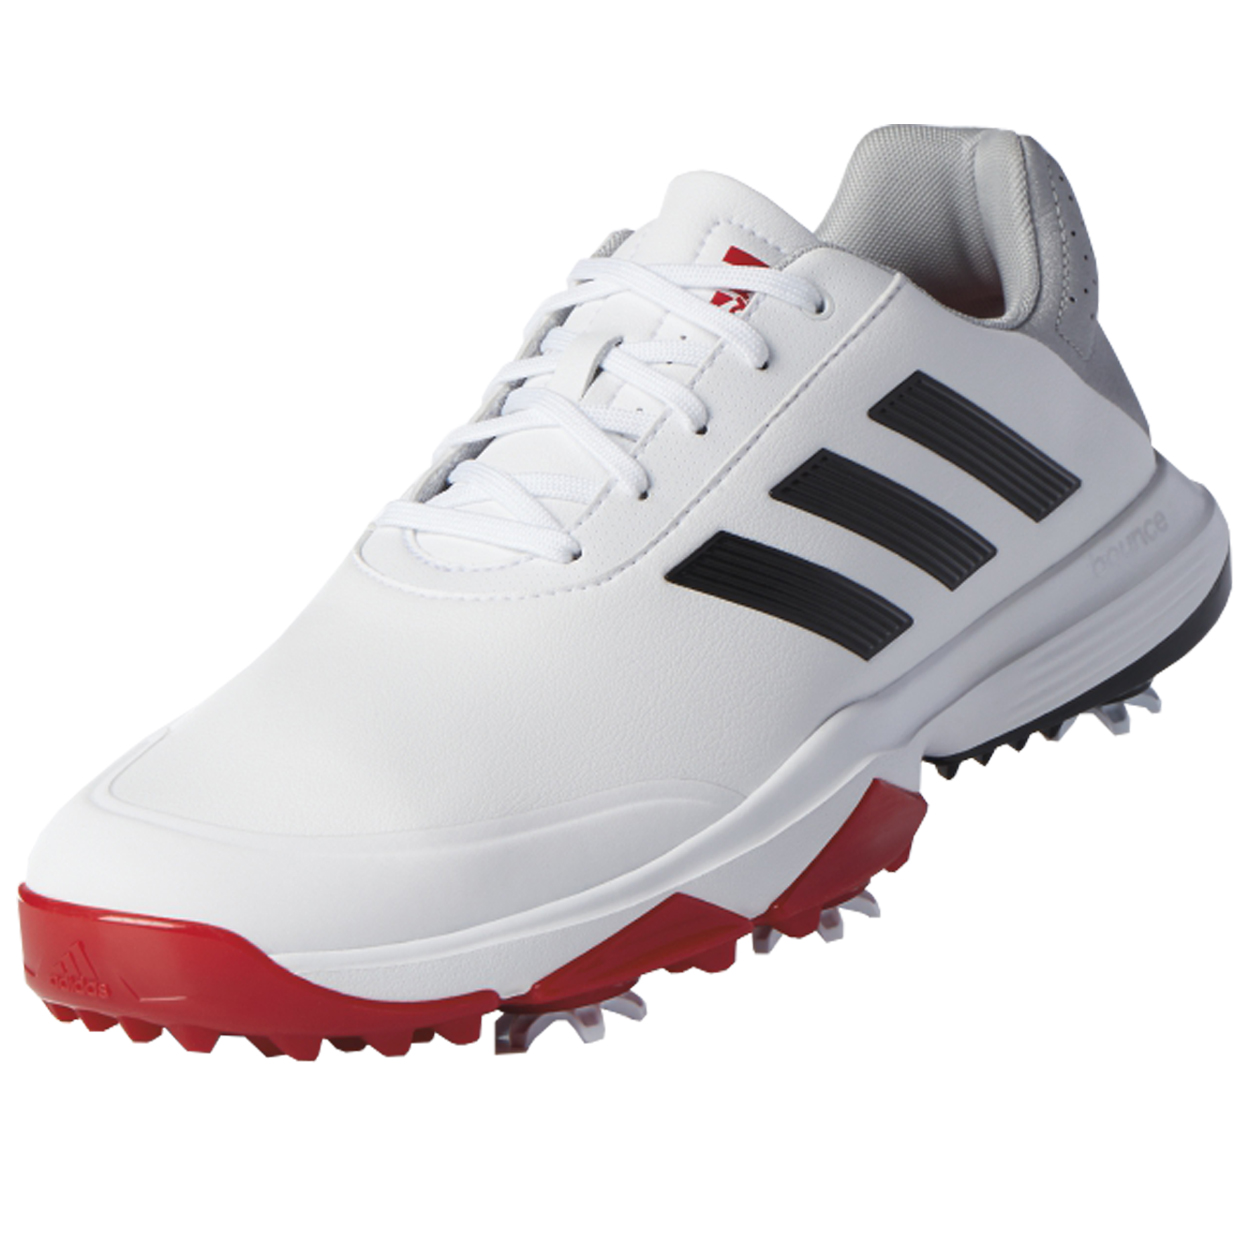 Adidas Men s adiPower Bounce Golf Shoes - GolfEtail.com fe5956ad84c7